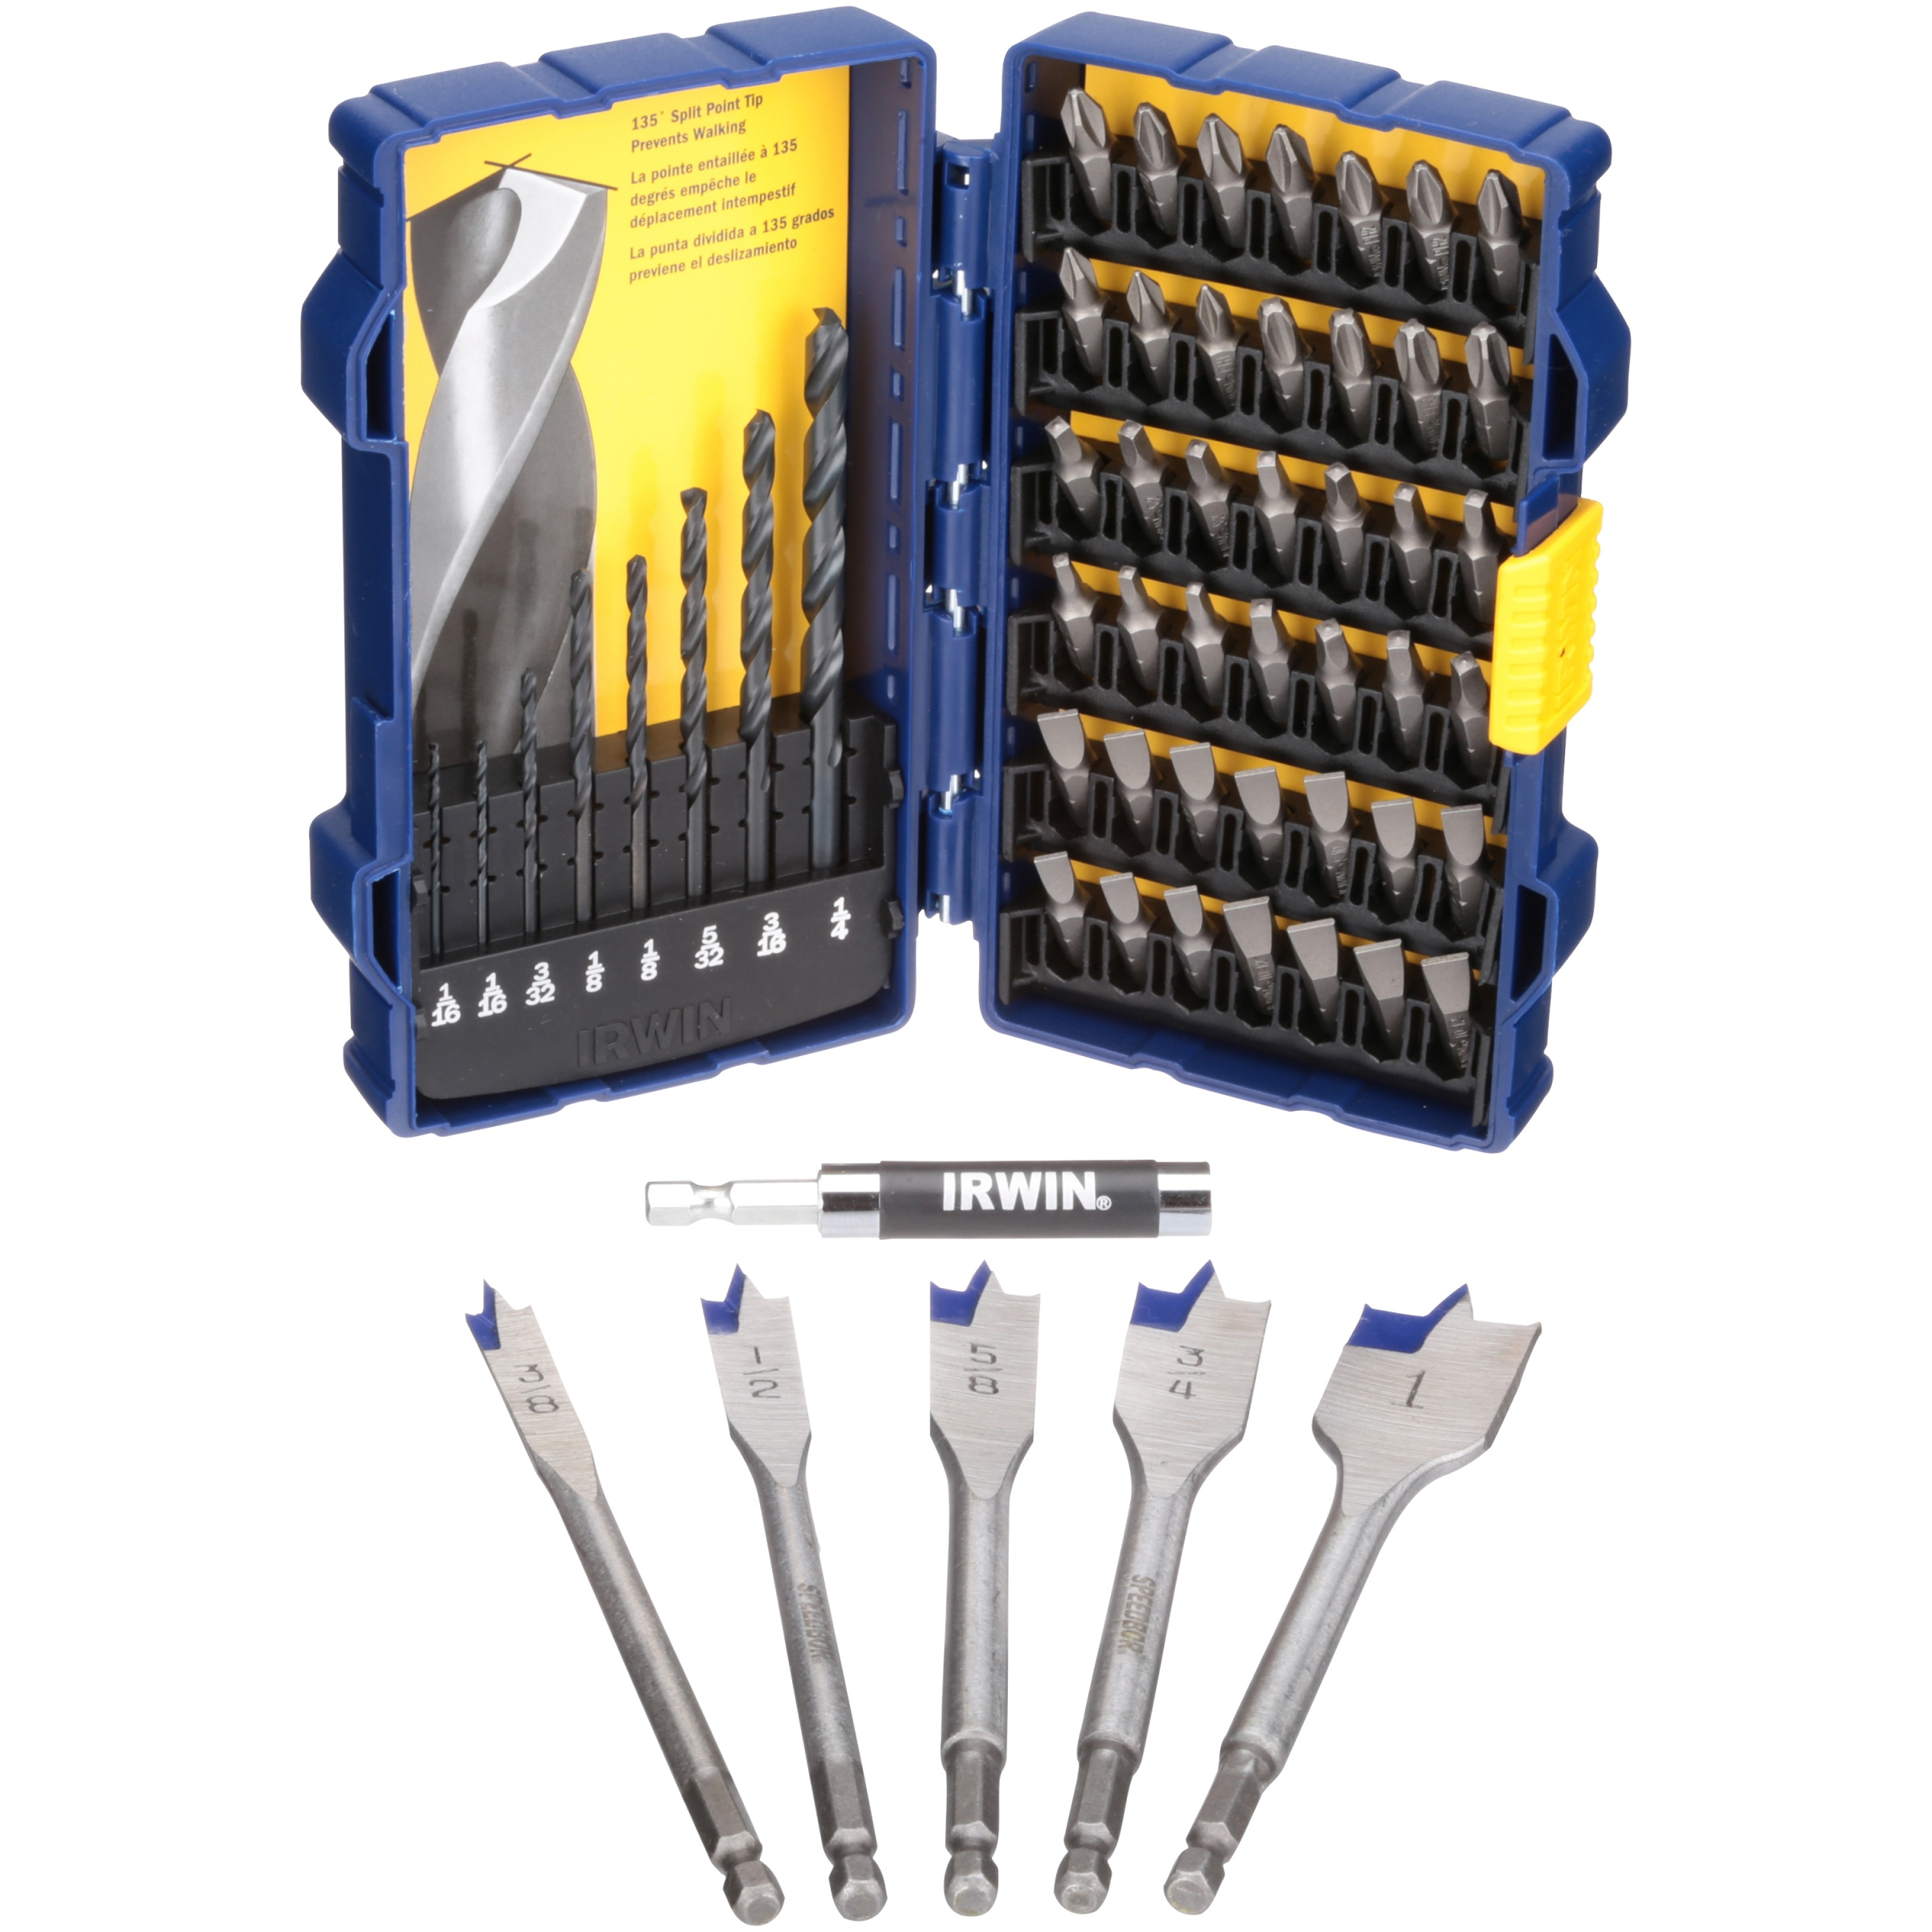 Irwin® Drill/Drive Set 56 pc Pack